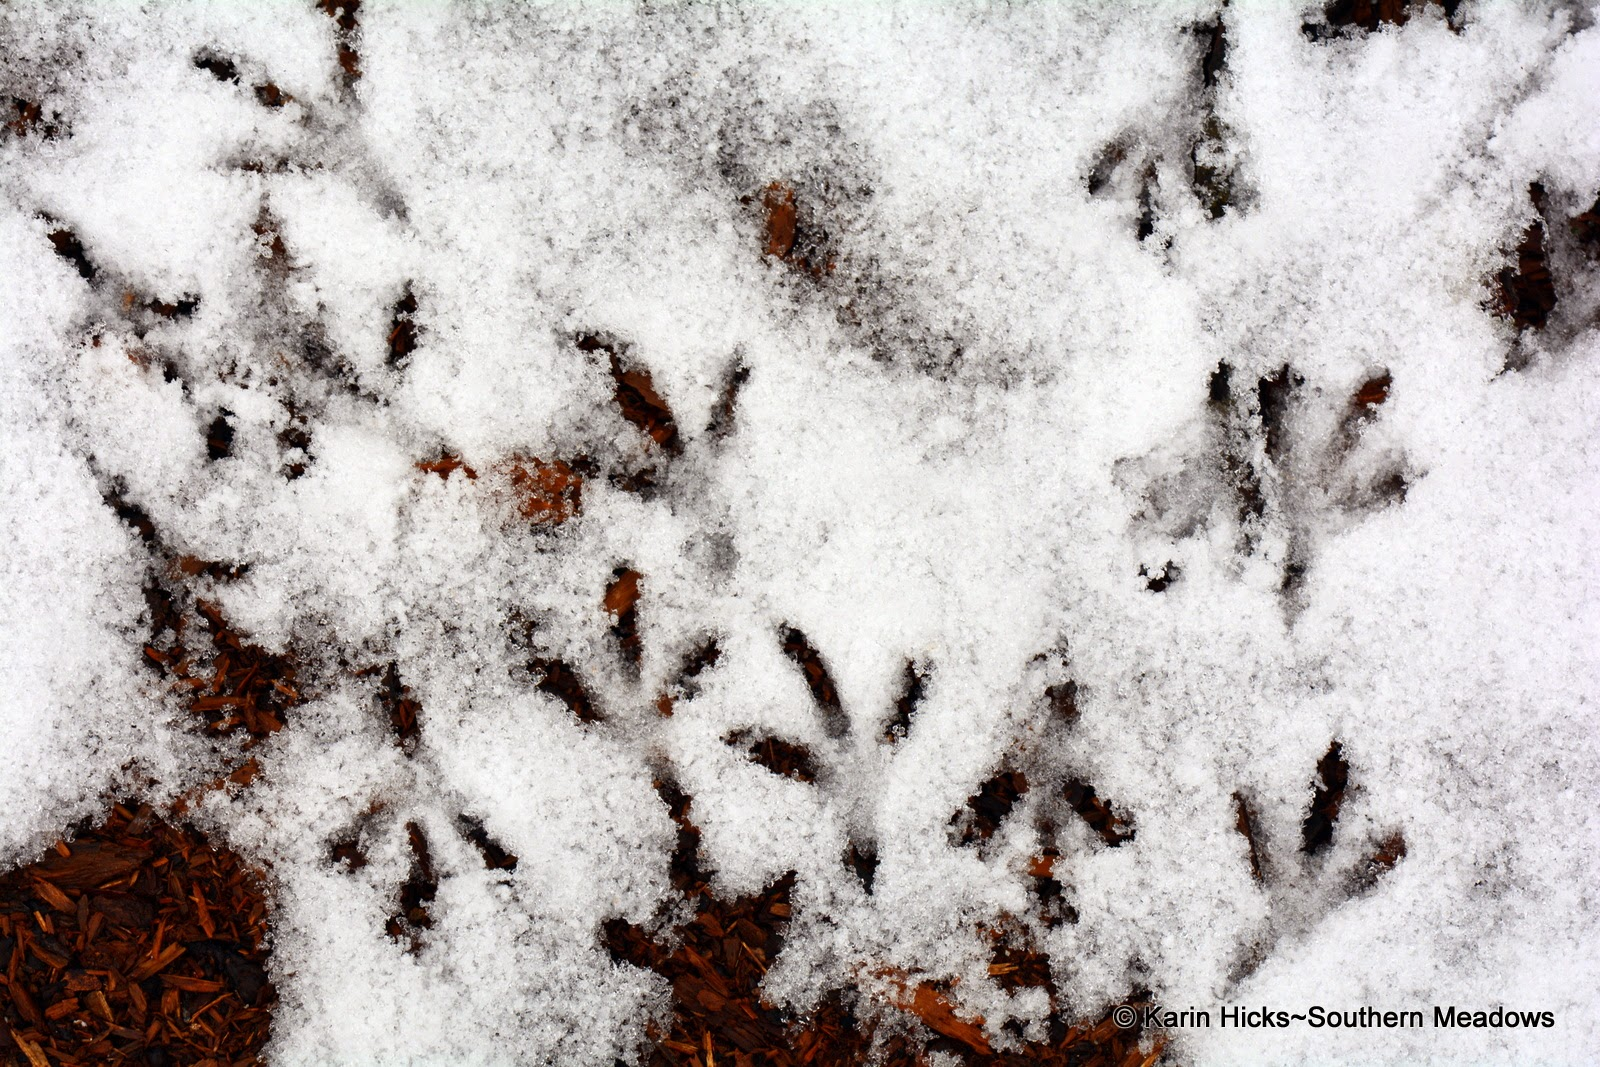 Mourning dove footprints in snow